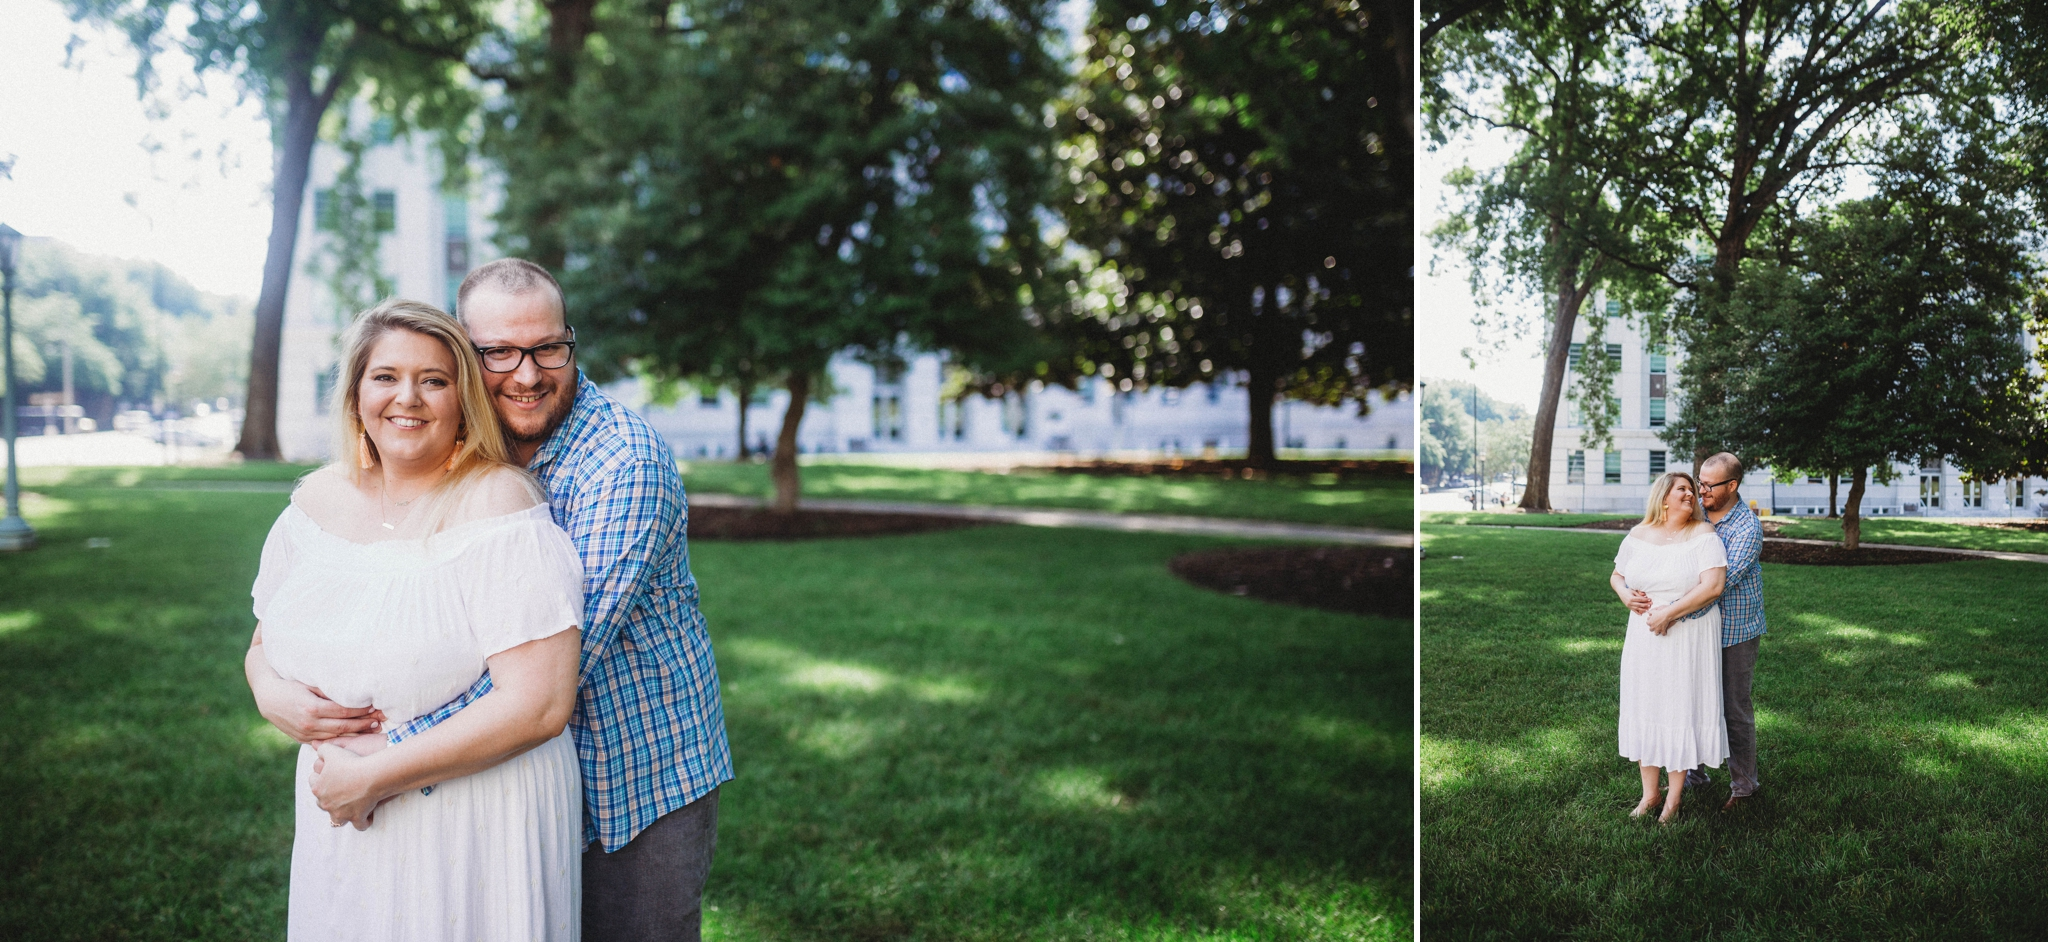 Brittany + Douglas - Downtown Raleigh Engagement Photography Session - Raleigh Wedding Photographer 12.jpg